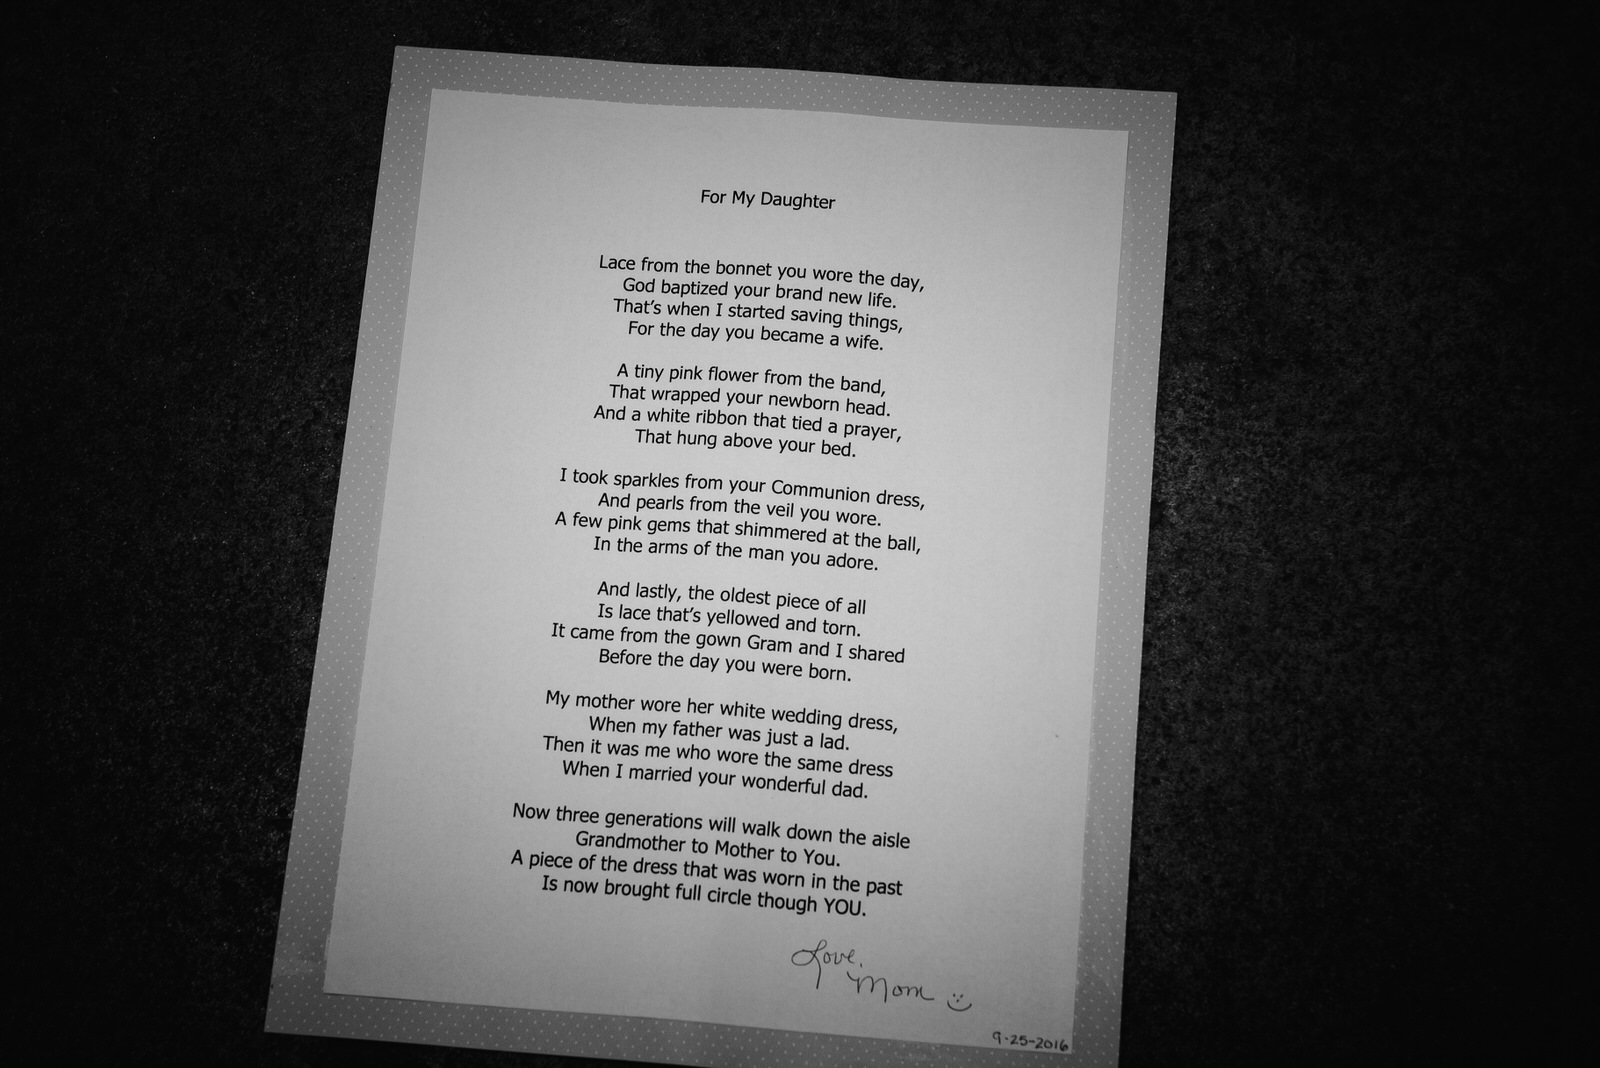 hilton_garden_inn_southpointe_pittsburgh_weddings_5.jpg